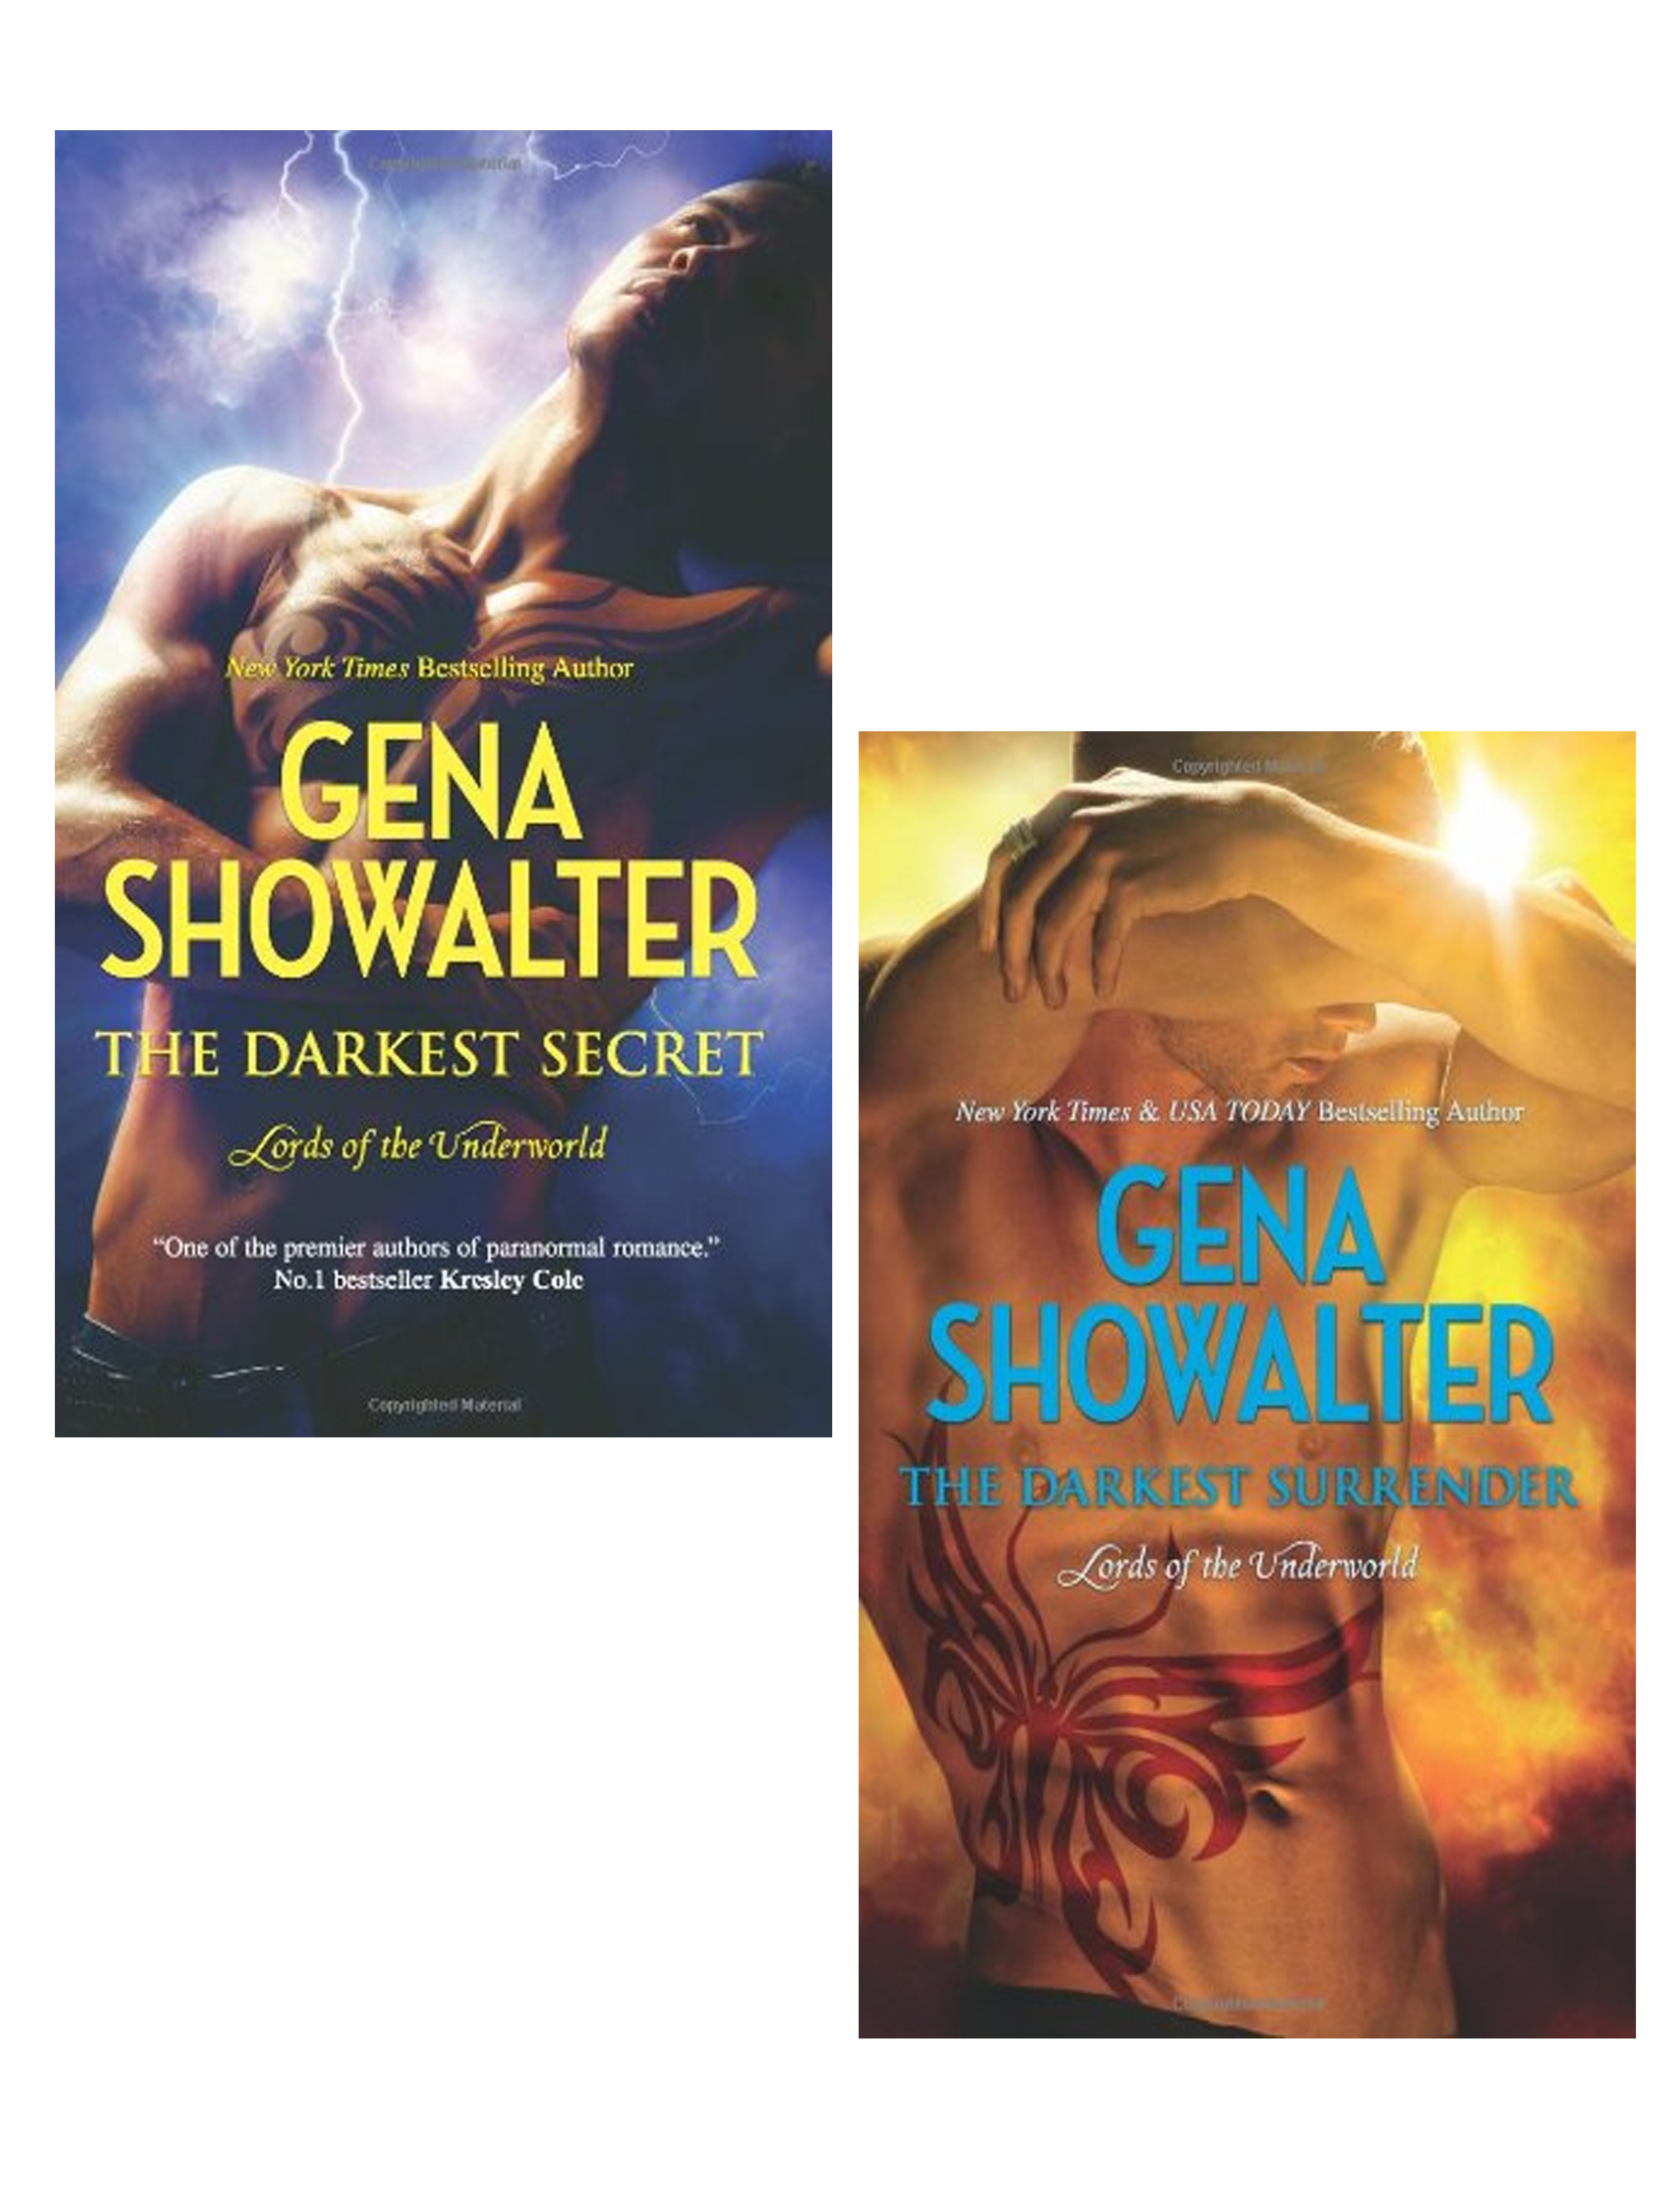 showalter 2 News & events february 5 new york times bestselling author gena showalter is back with a sizzling original heartbreakers tale about an icy war vet and the only.